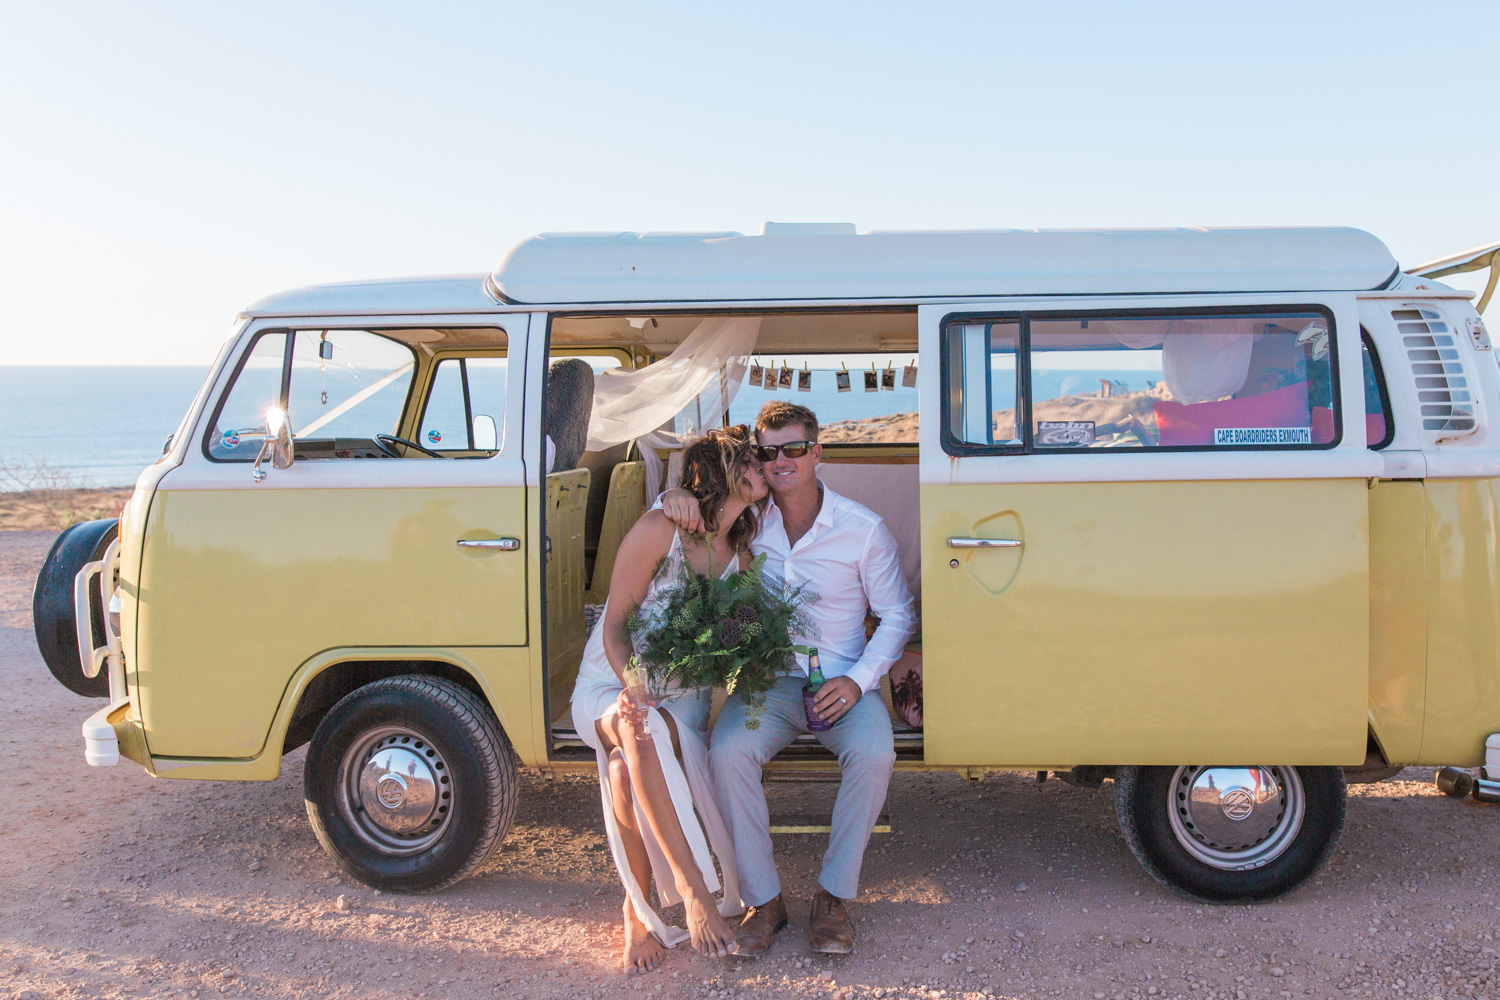 Blue Media exmouth ningaloo  Weddings Lifestyle photography-8.jpg